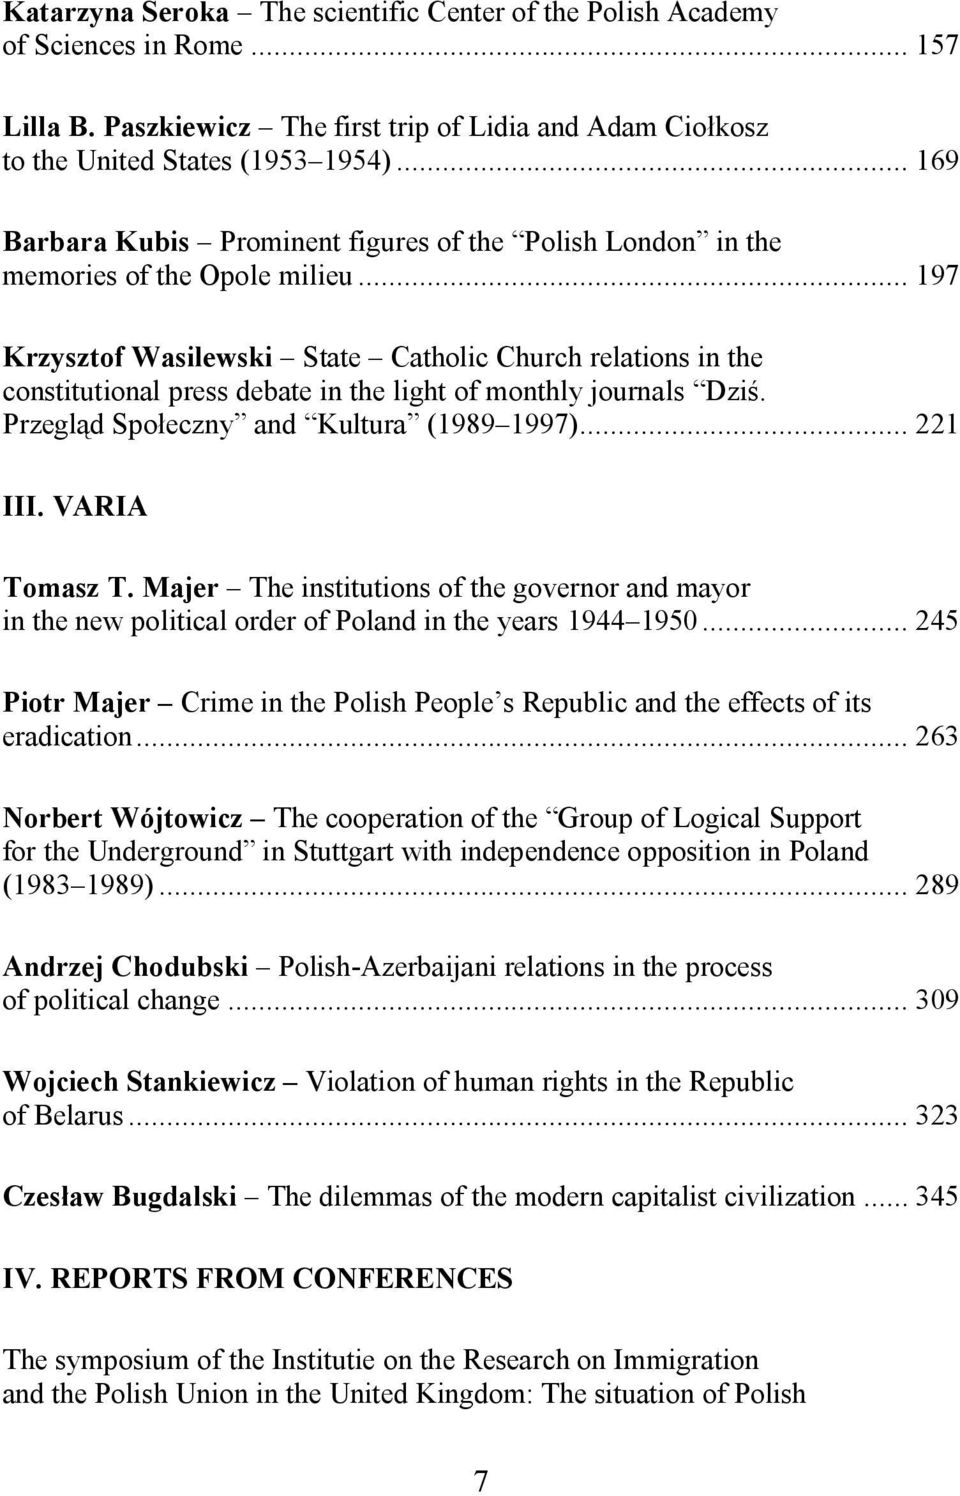 .. 197 Krzysztof Wasilewski State Catholic Church relations in the constitutional press debate in the light of monthly journals Dzi. Przegl d Spo eczny and Kultura (1989 1997)... 221 III.